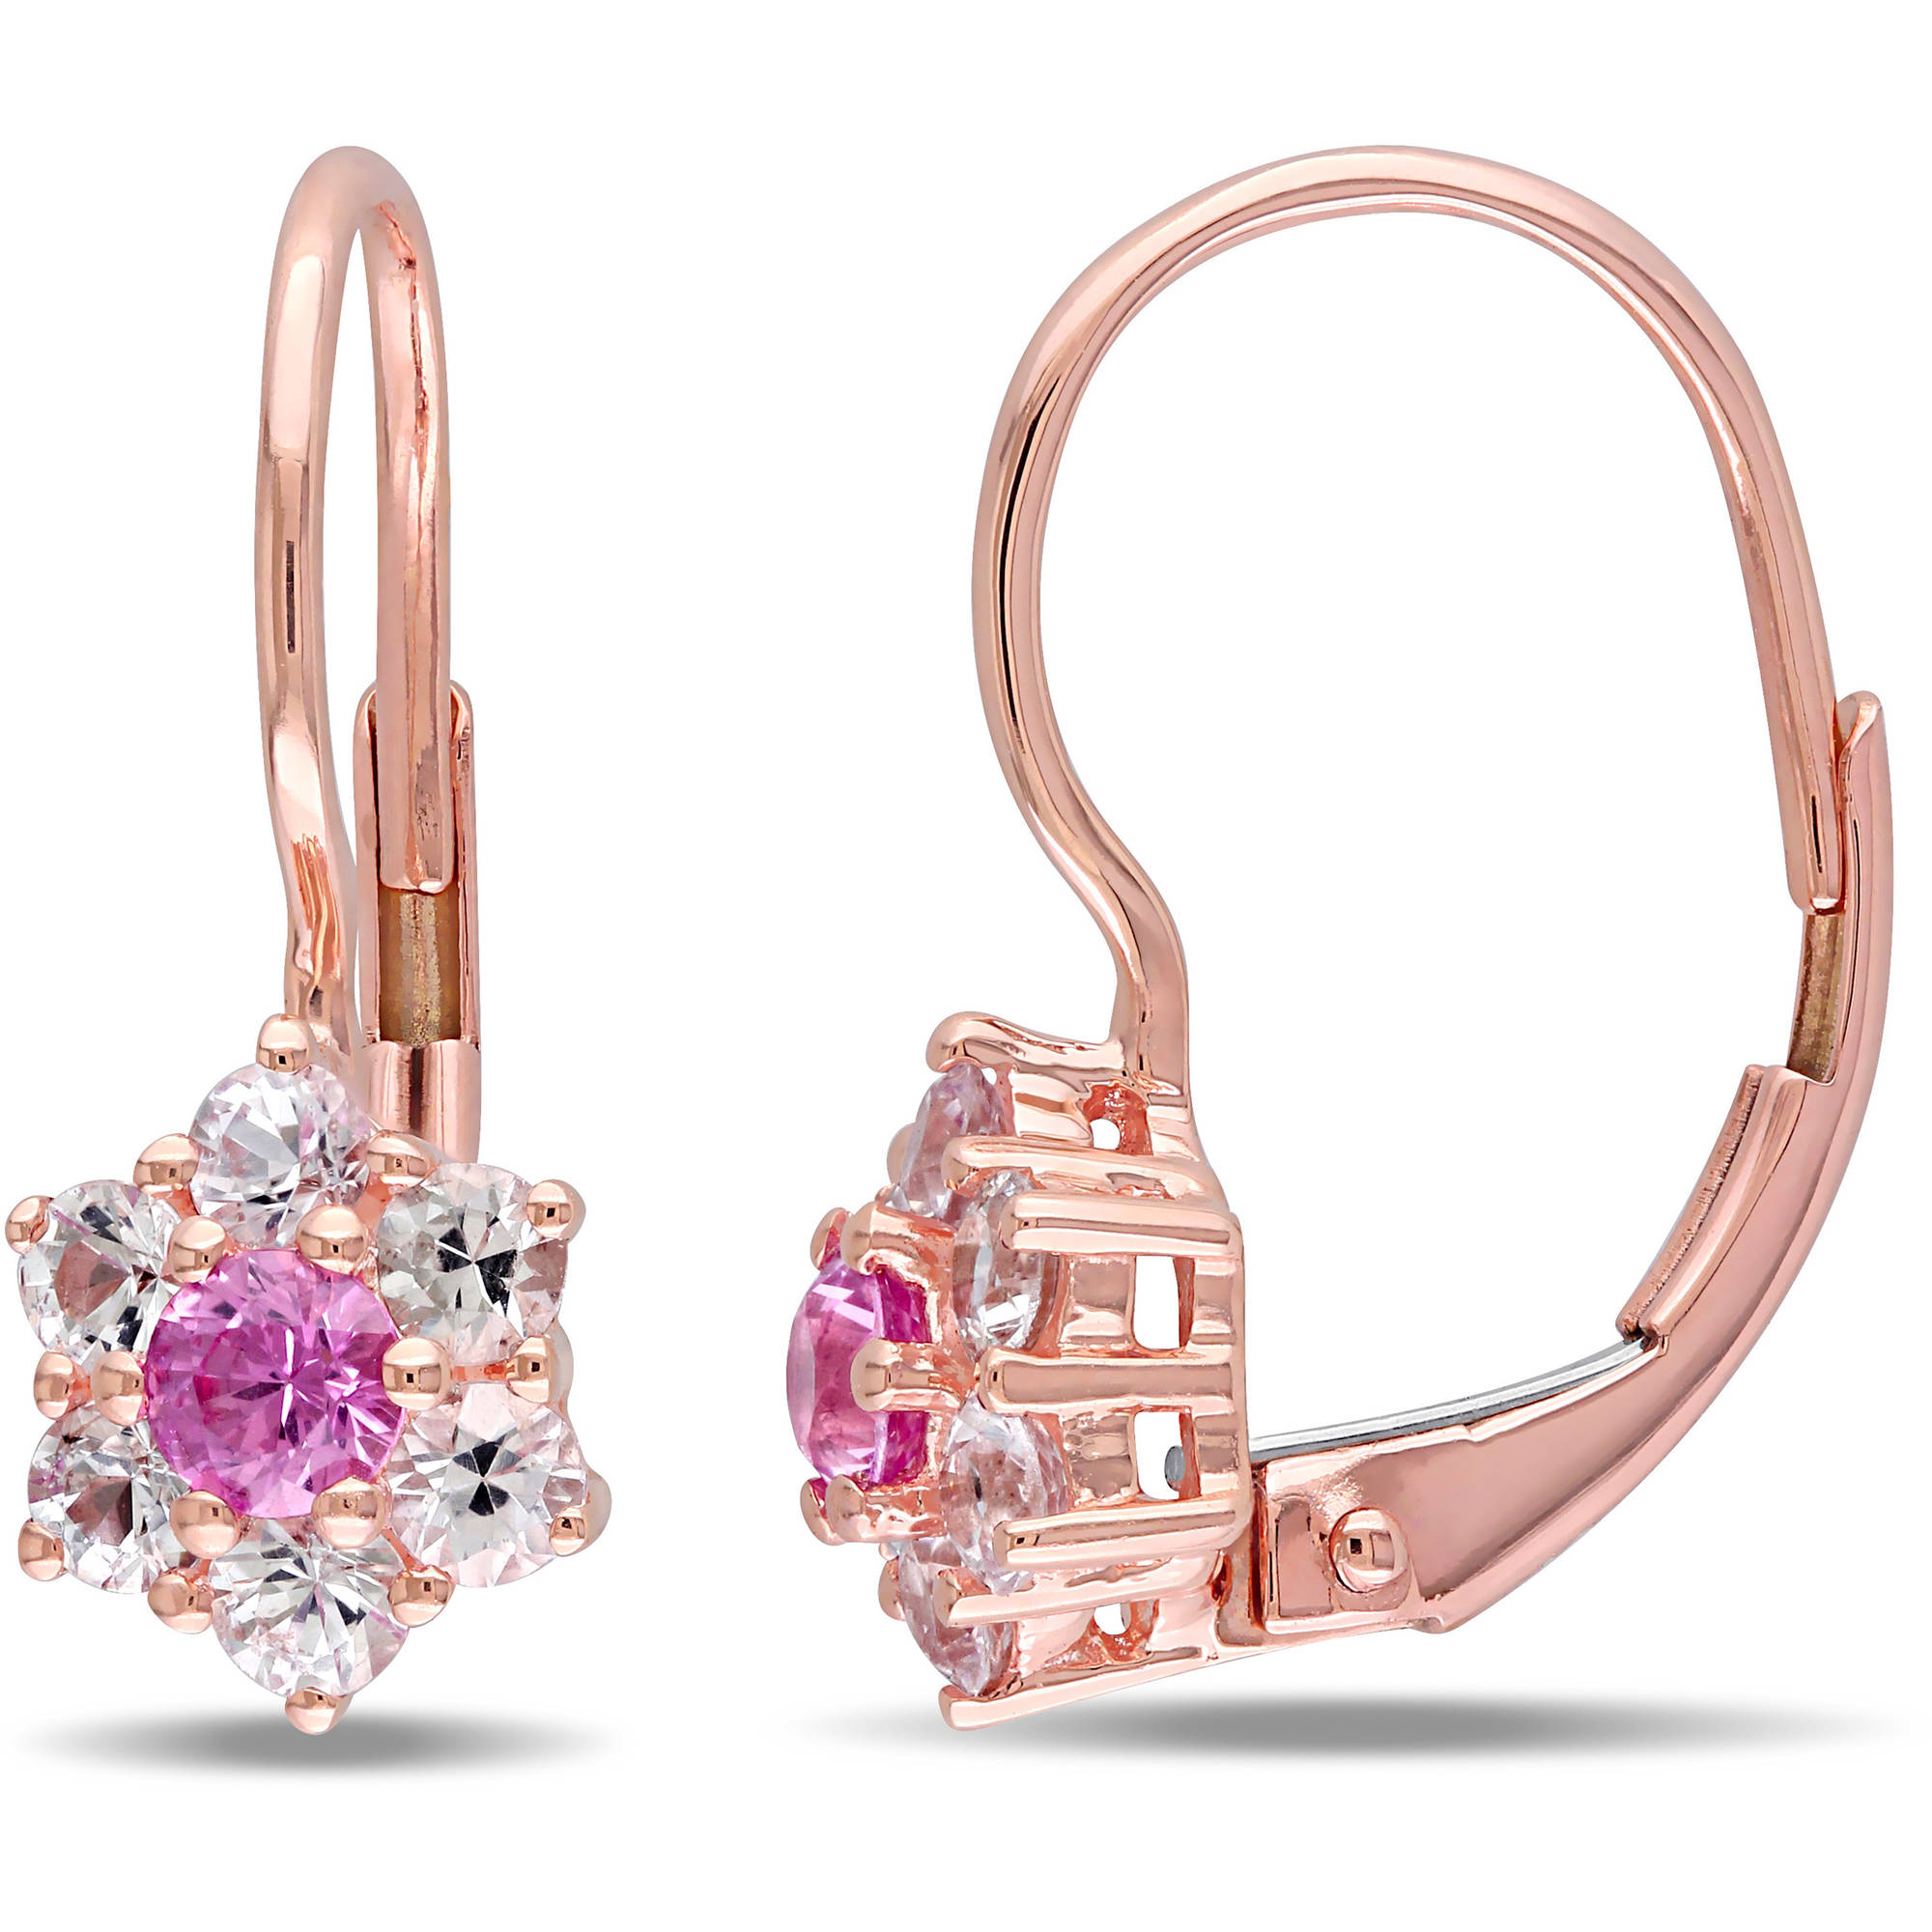 Tangelo 1 Carat T.G.W. Pink and White Sapphire 10kt Rose Gold Flower Halo Leverback Earrings